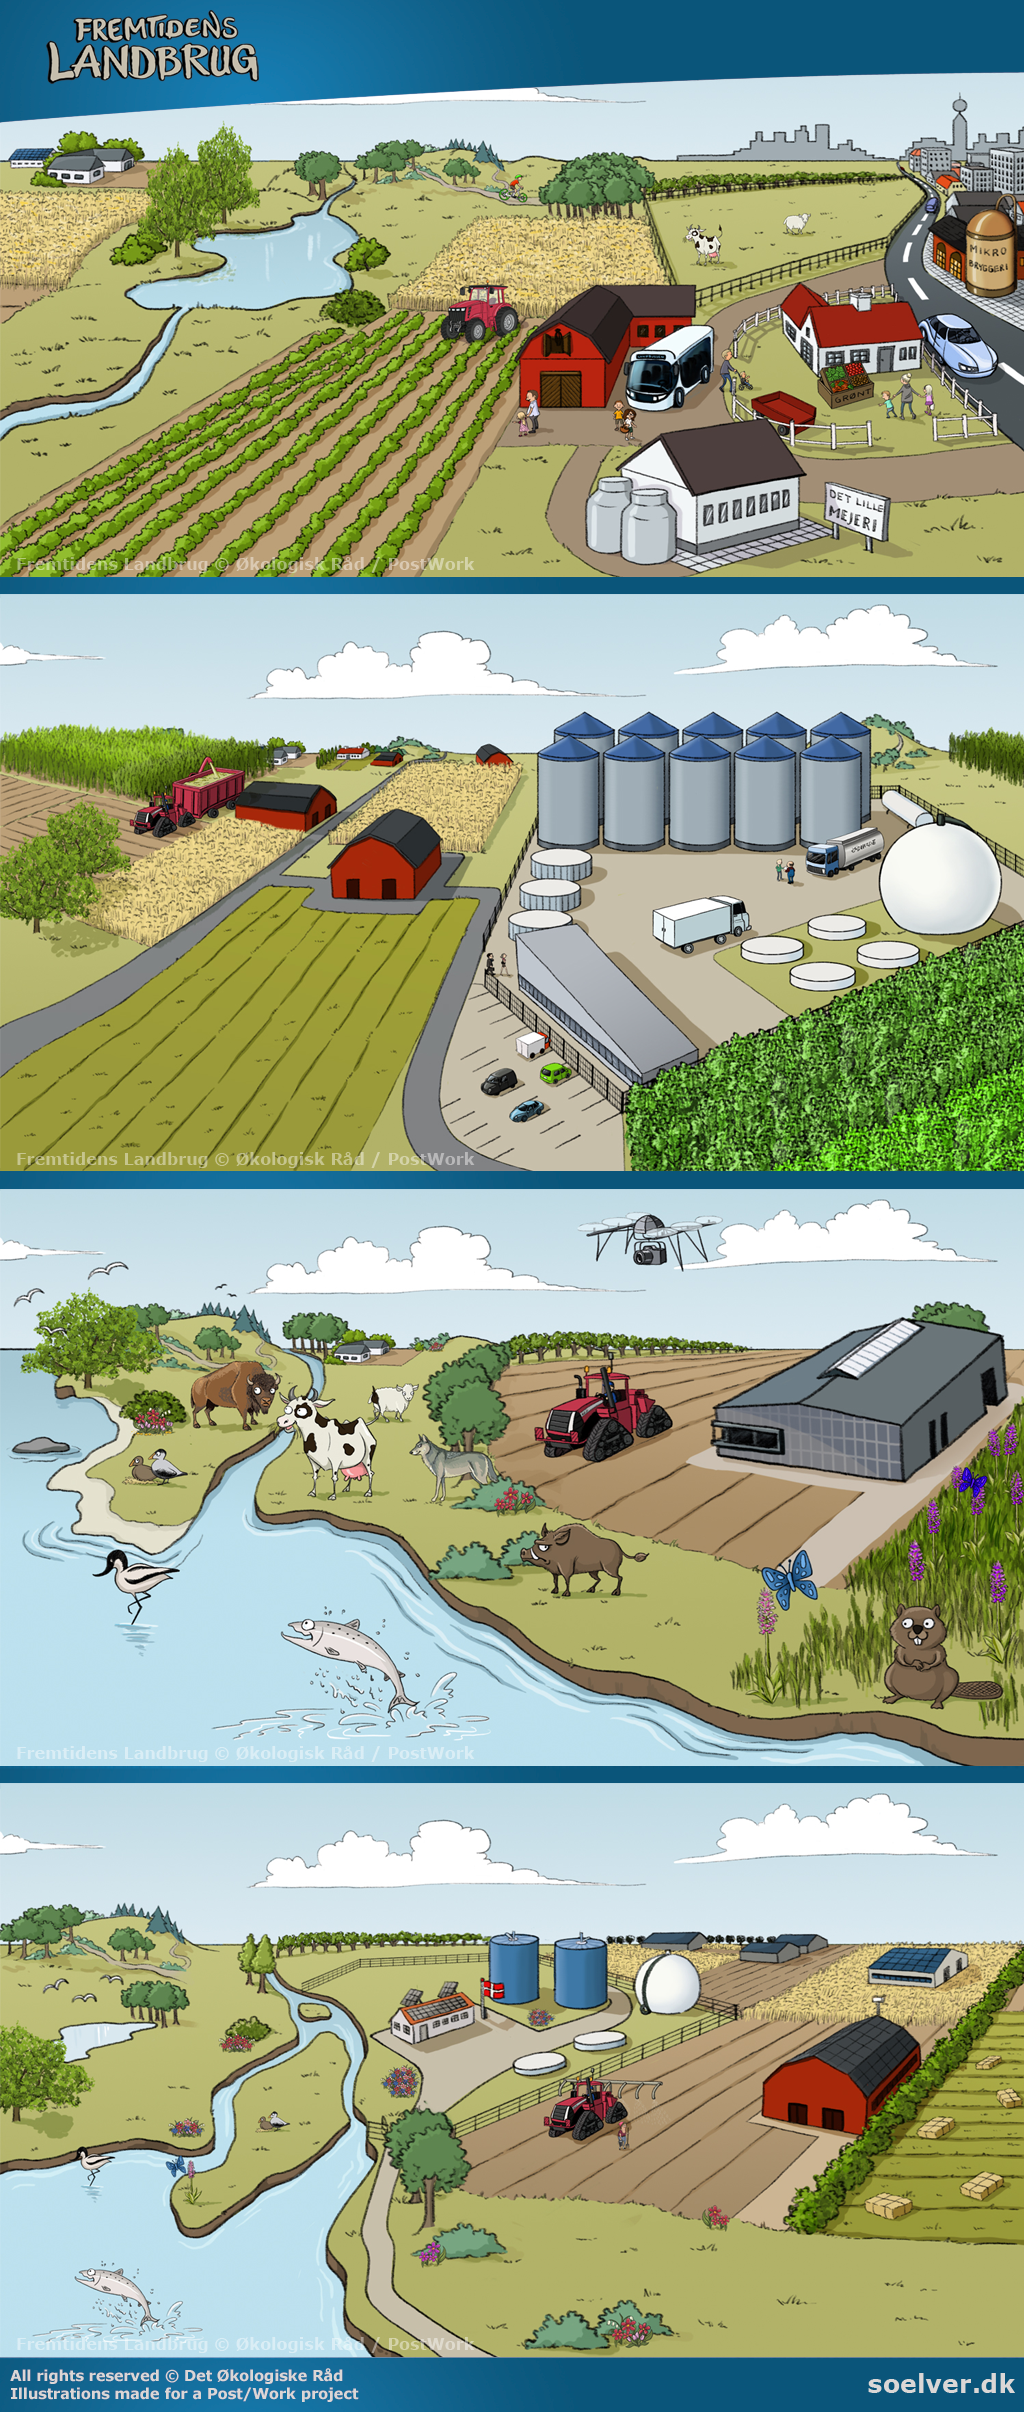 Movie illustrations for The Future of Farming by Anita Soelver